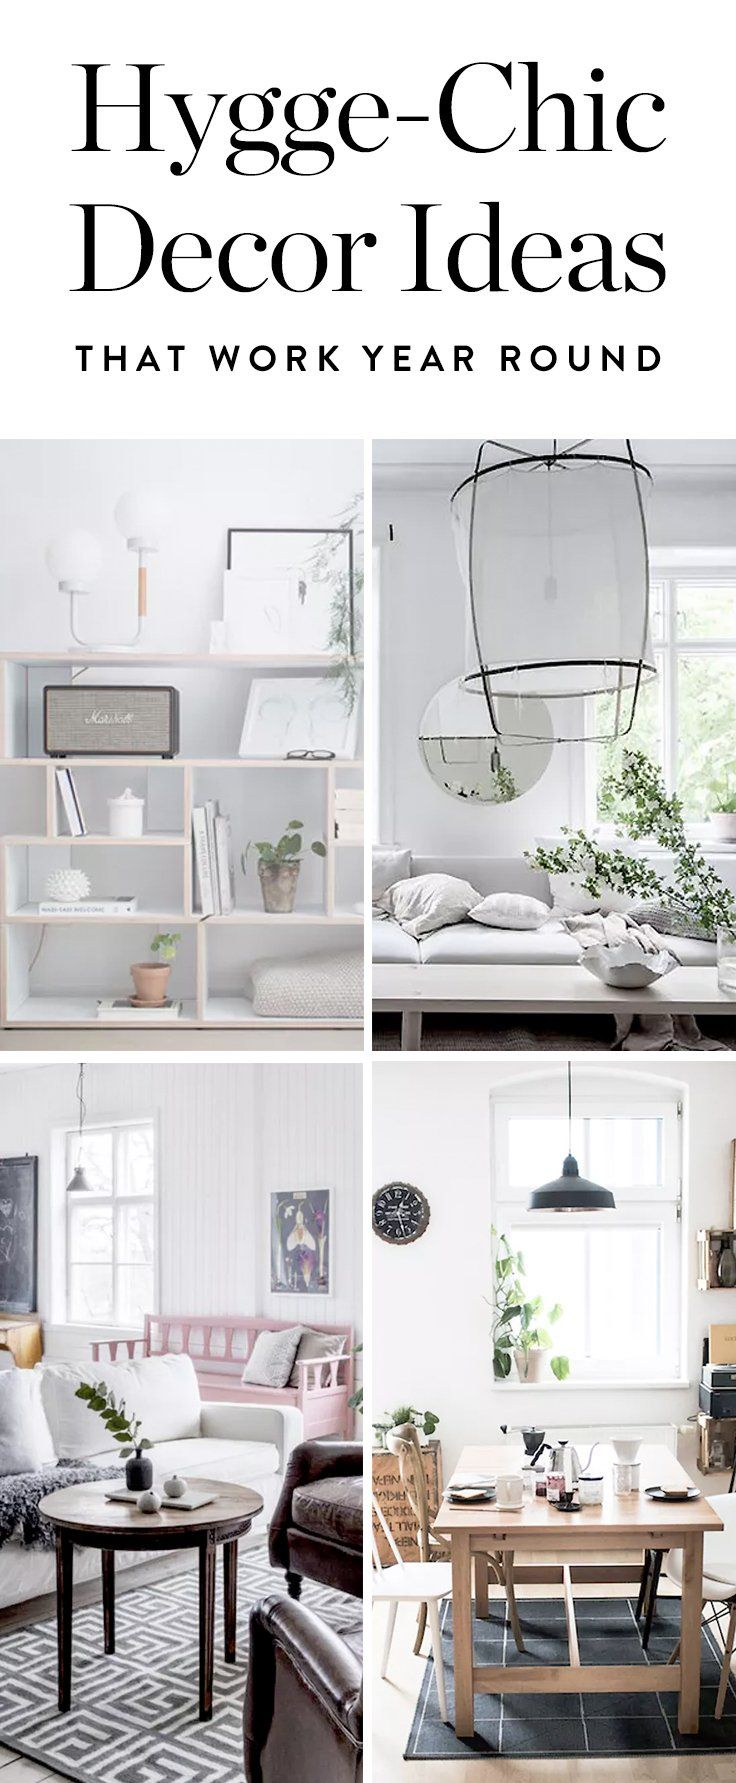 1362 best home decor images on pinterest home live and - Hygge design ideas ...